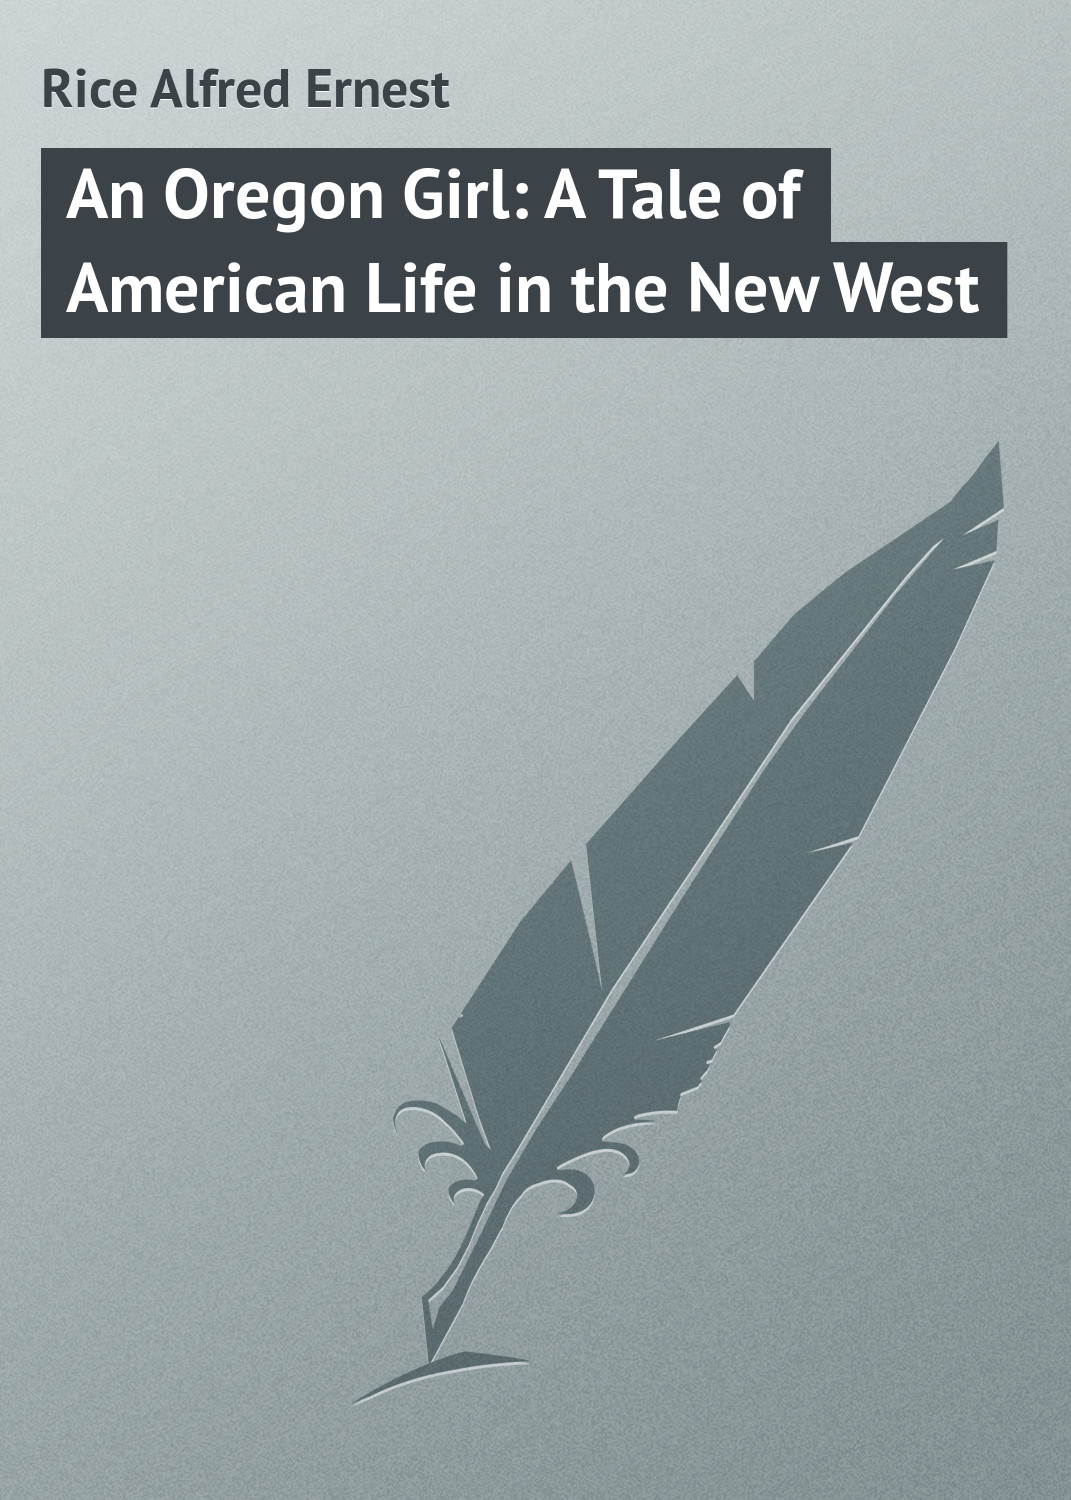 Rice Alfred Ernest An Oregon Girl: A Tale of American Life in the New West linda wagner martin ernest hemingway a literary life